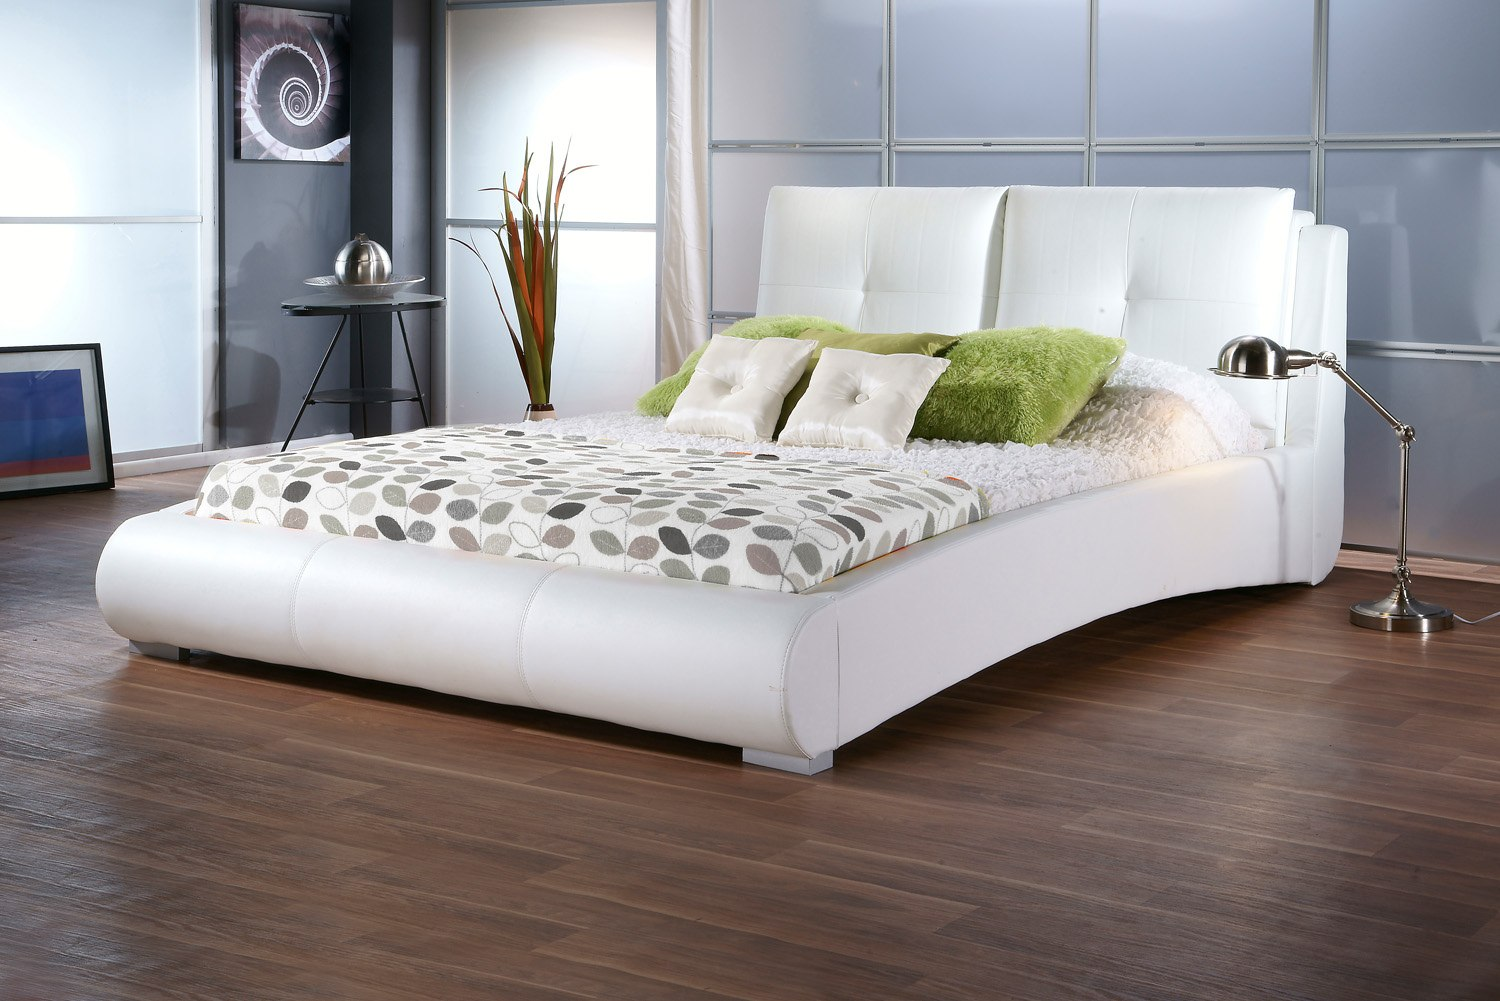 sophia white faux leather bedframe available from the world of beds askern doncaster